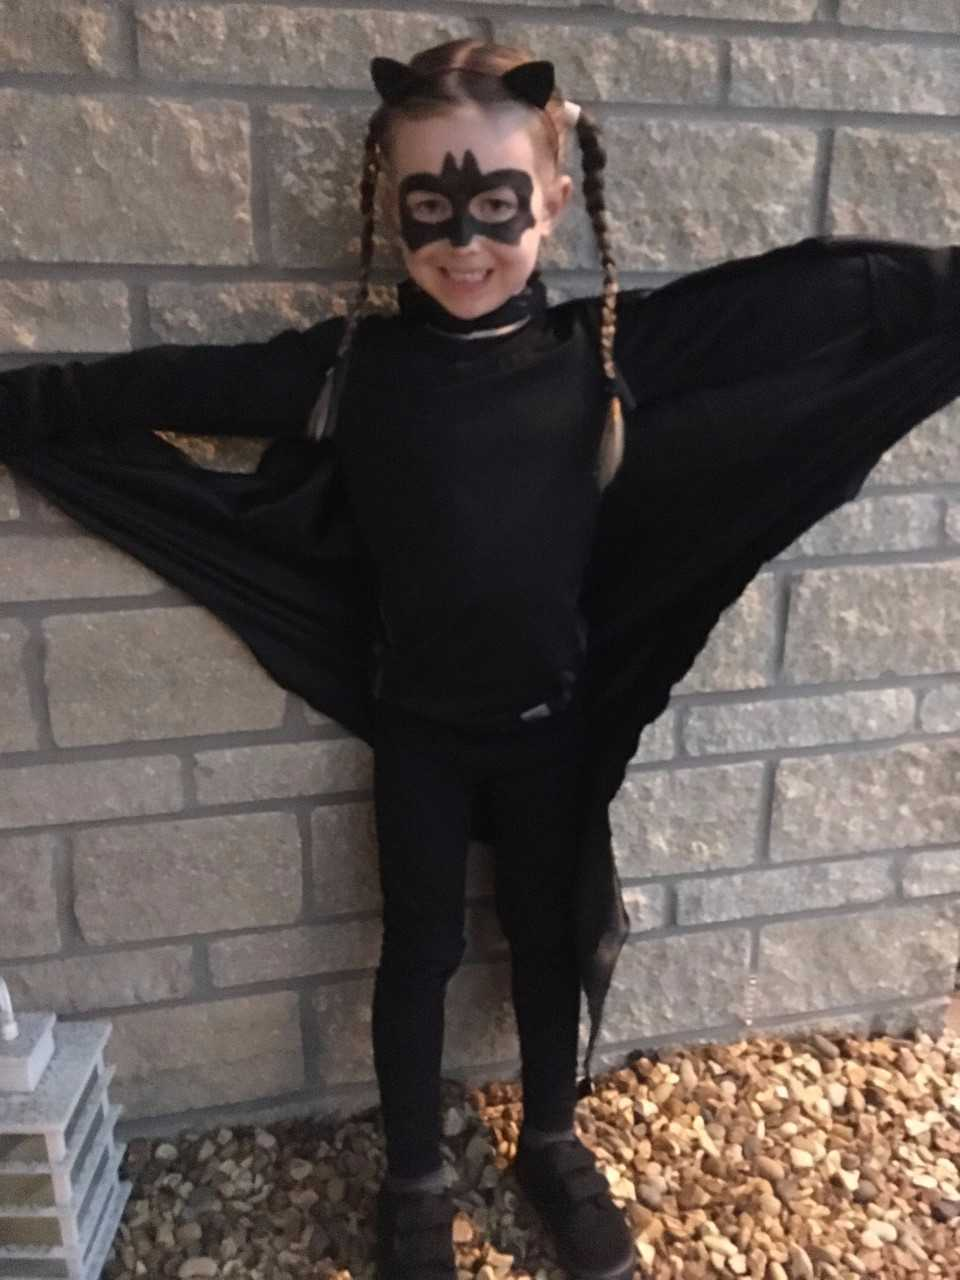 Girl dressed as a bat for Halloween - What's with sexy costumes for kids?